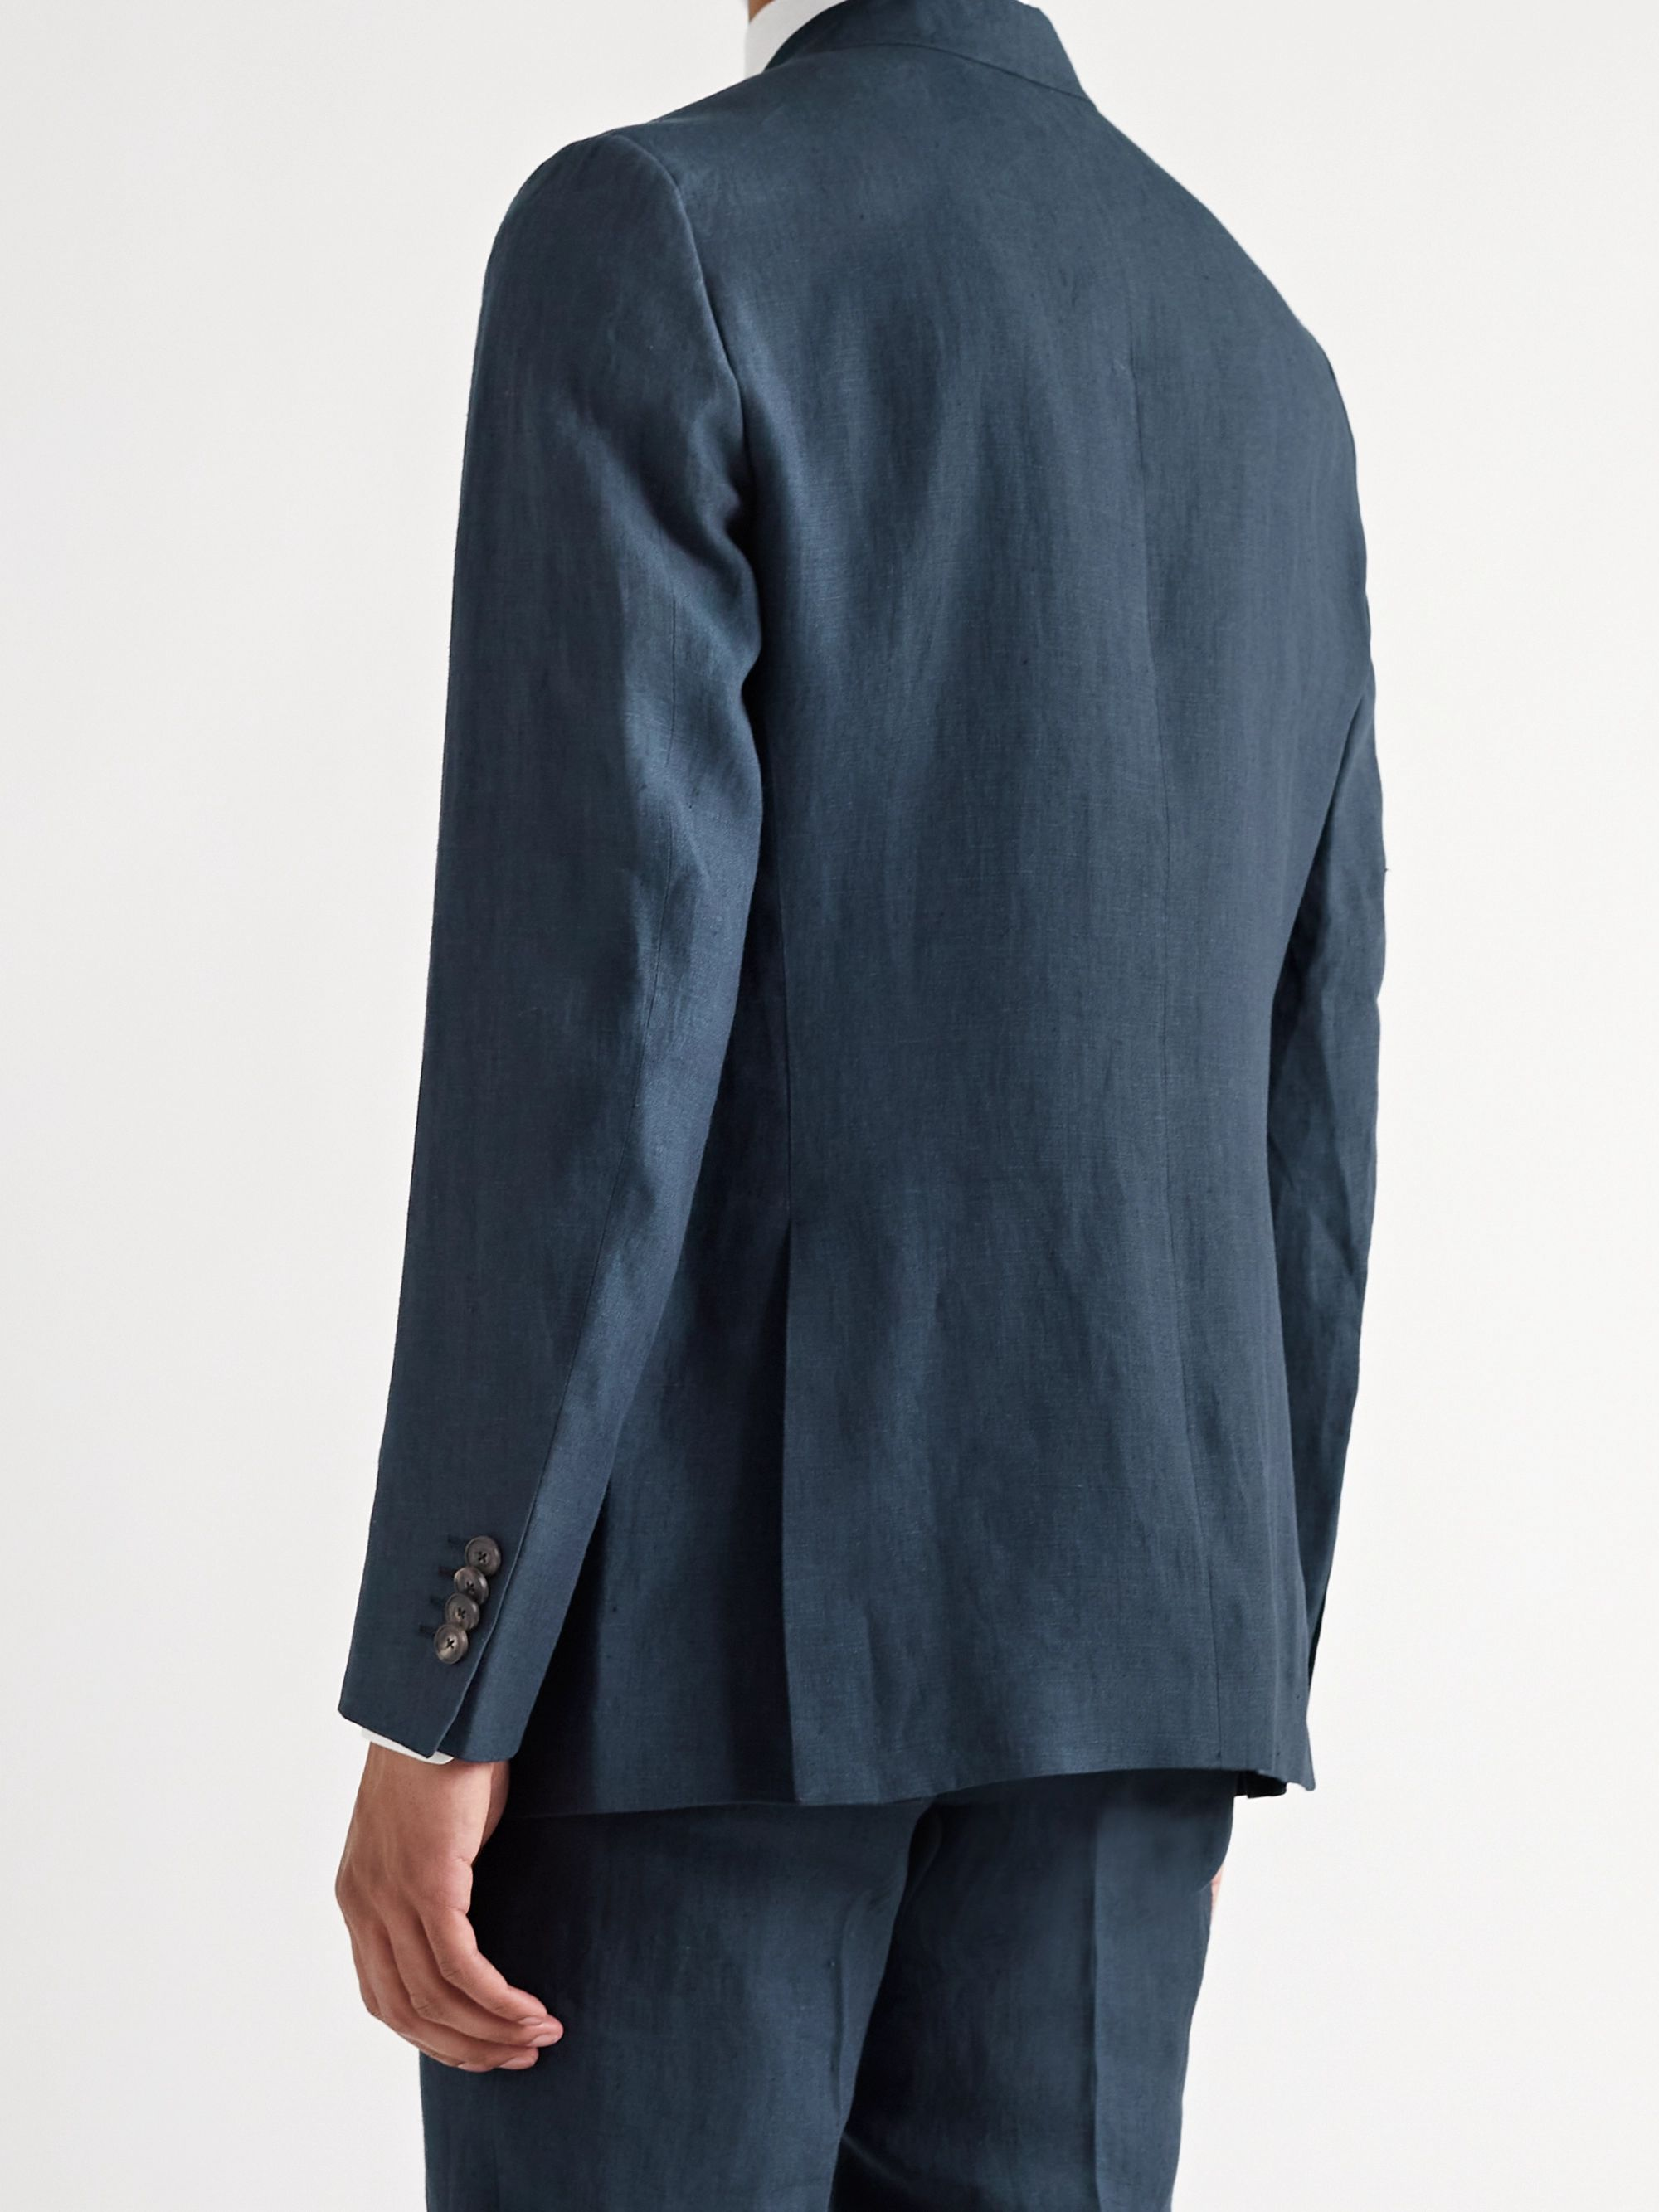 ETRO Unstructured Slub Linen Suit Jacket